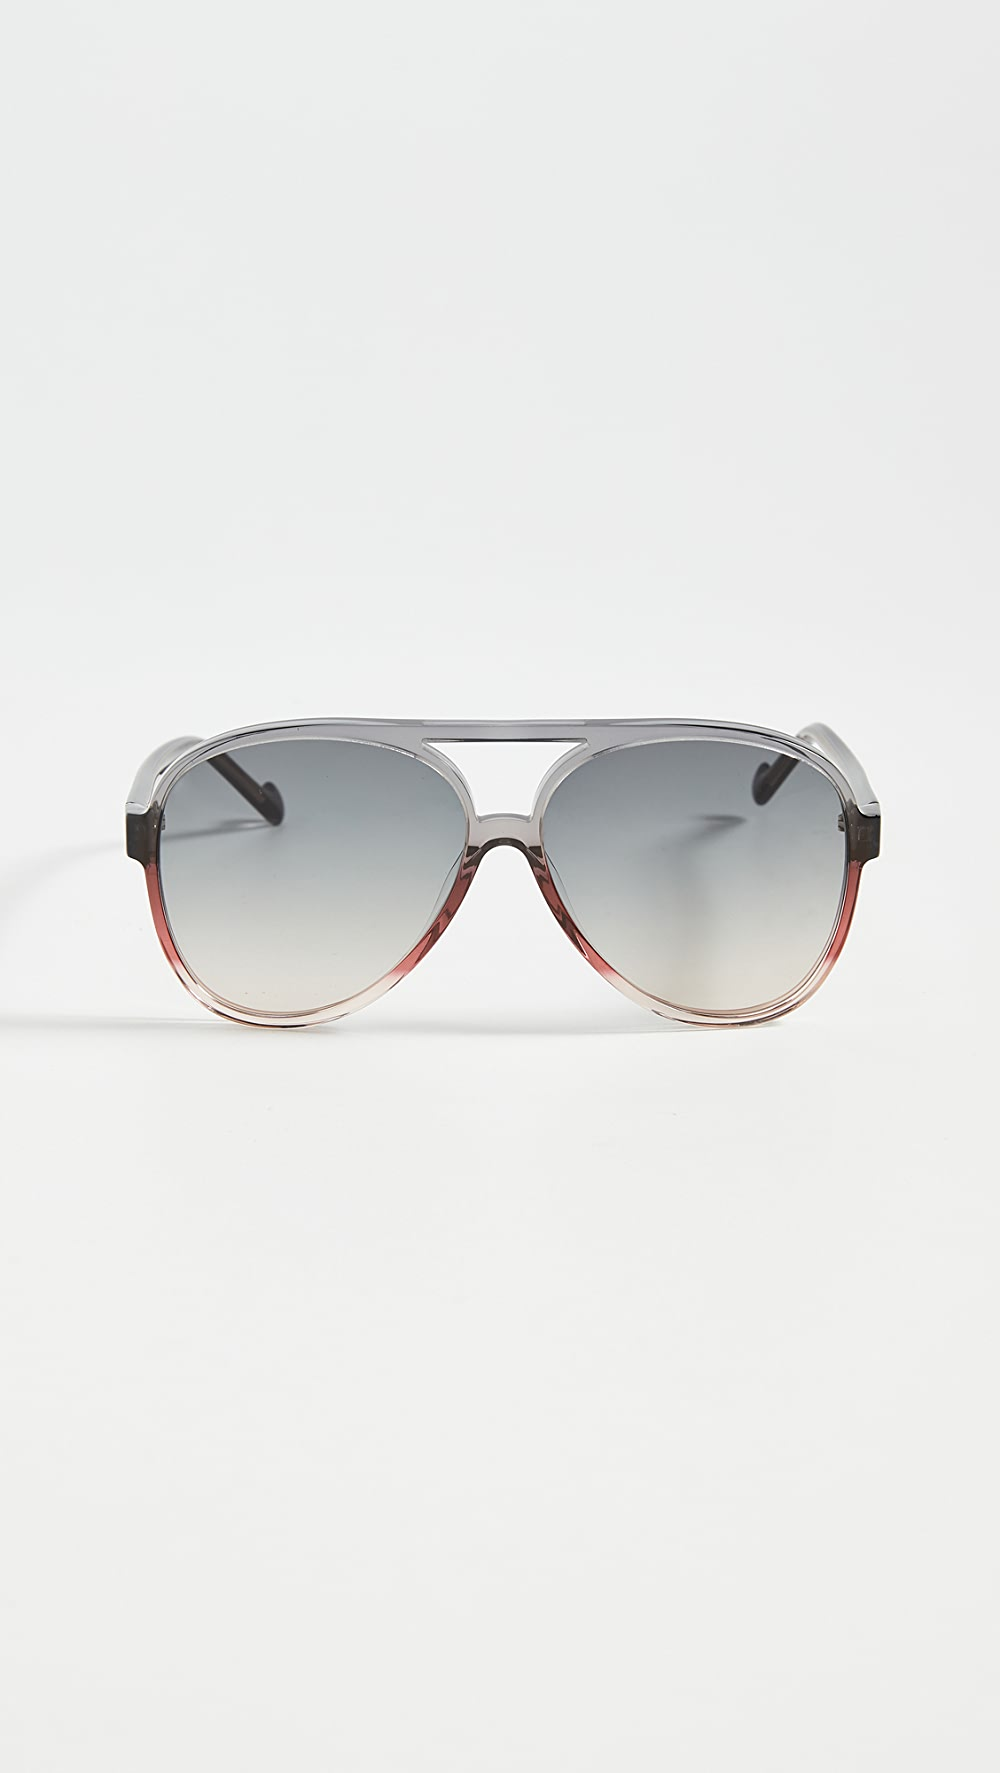 Zimmermann Eyewear